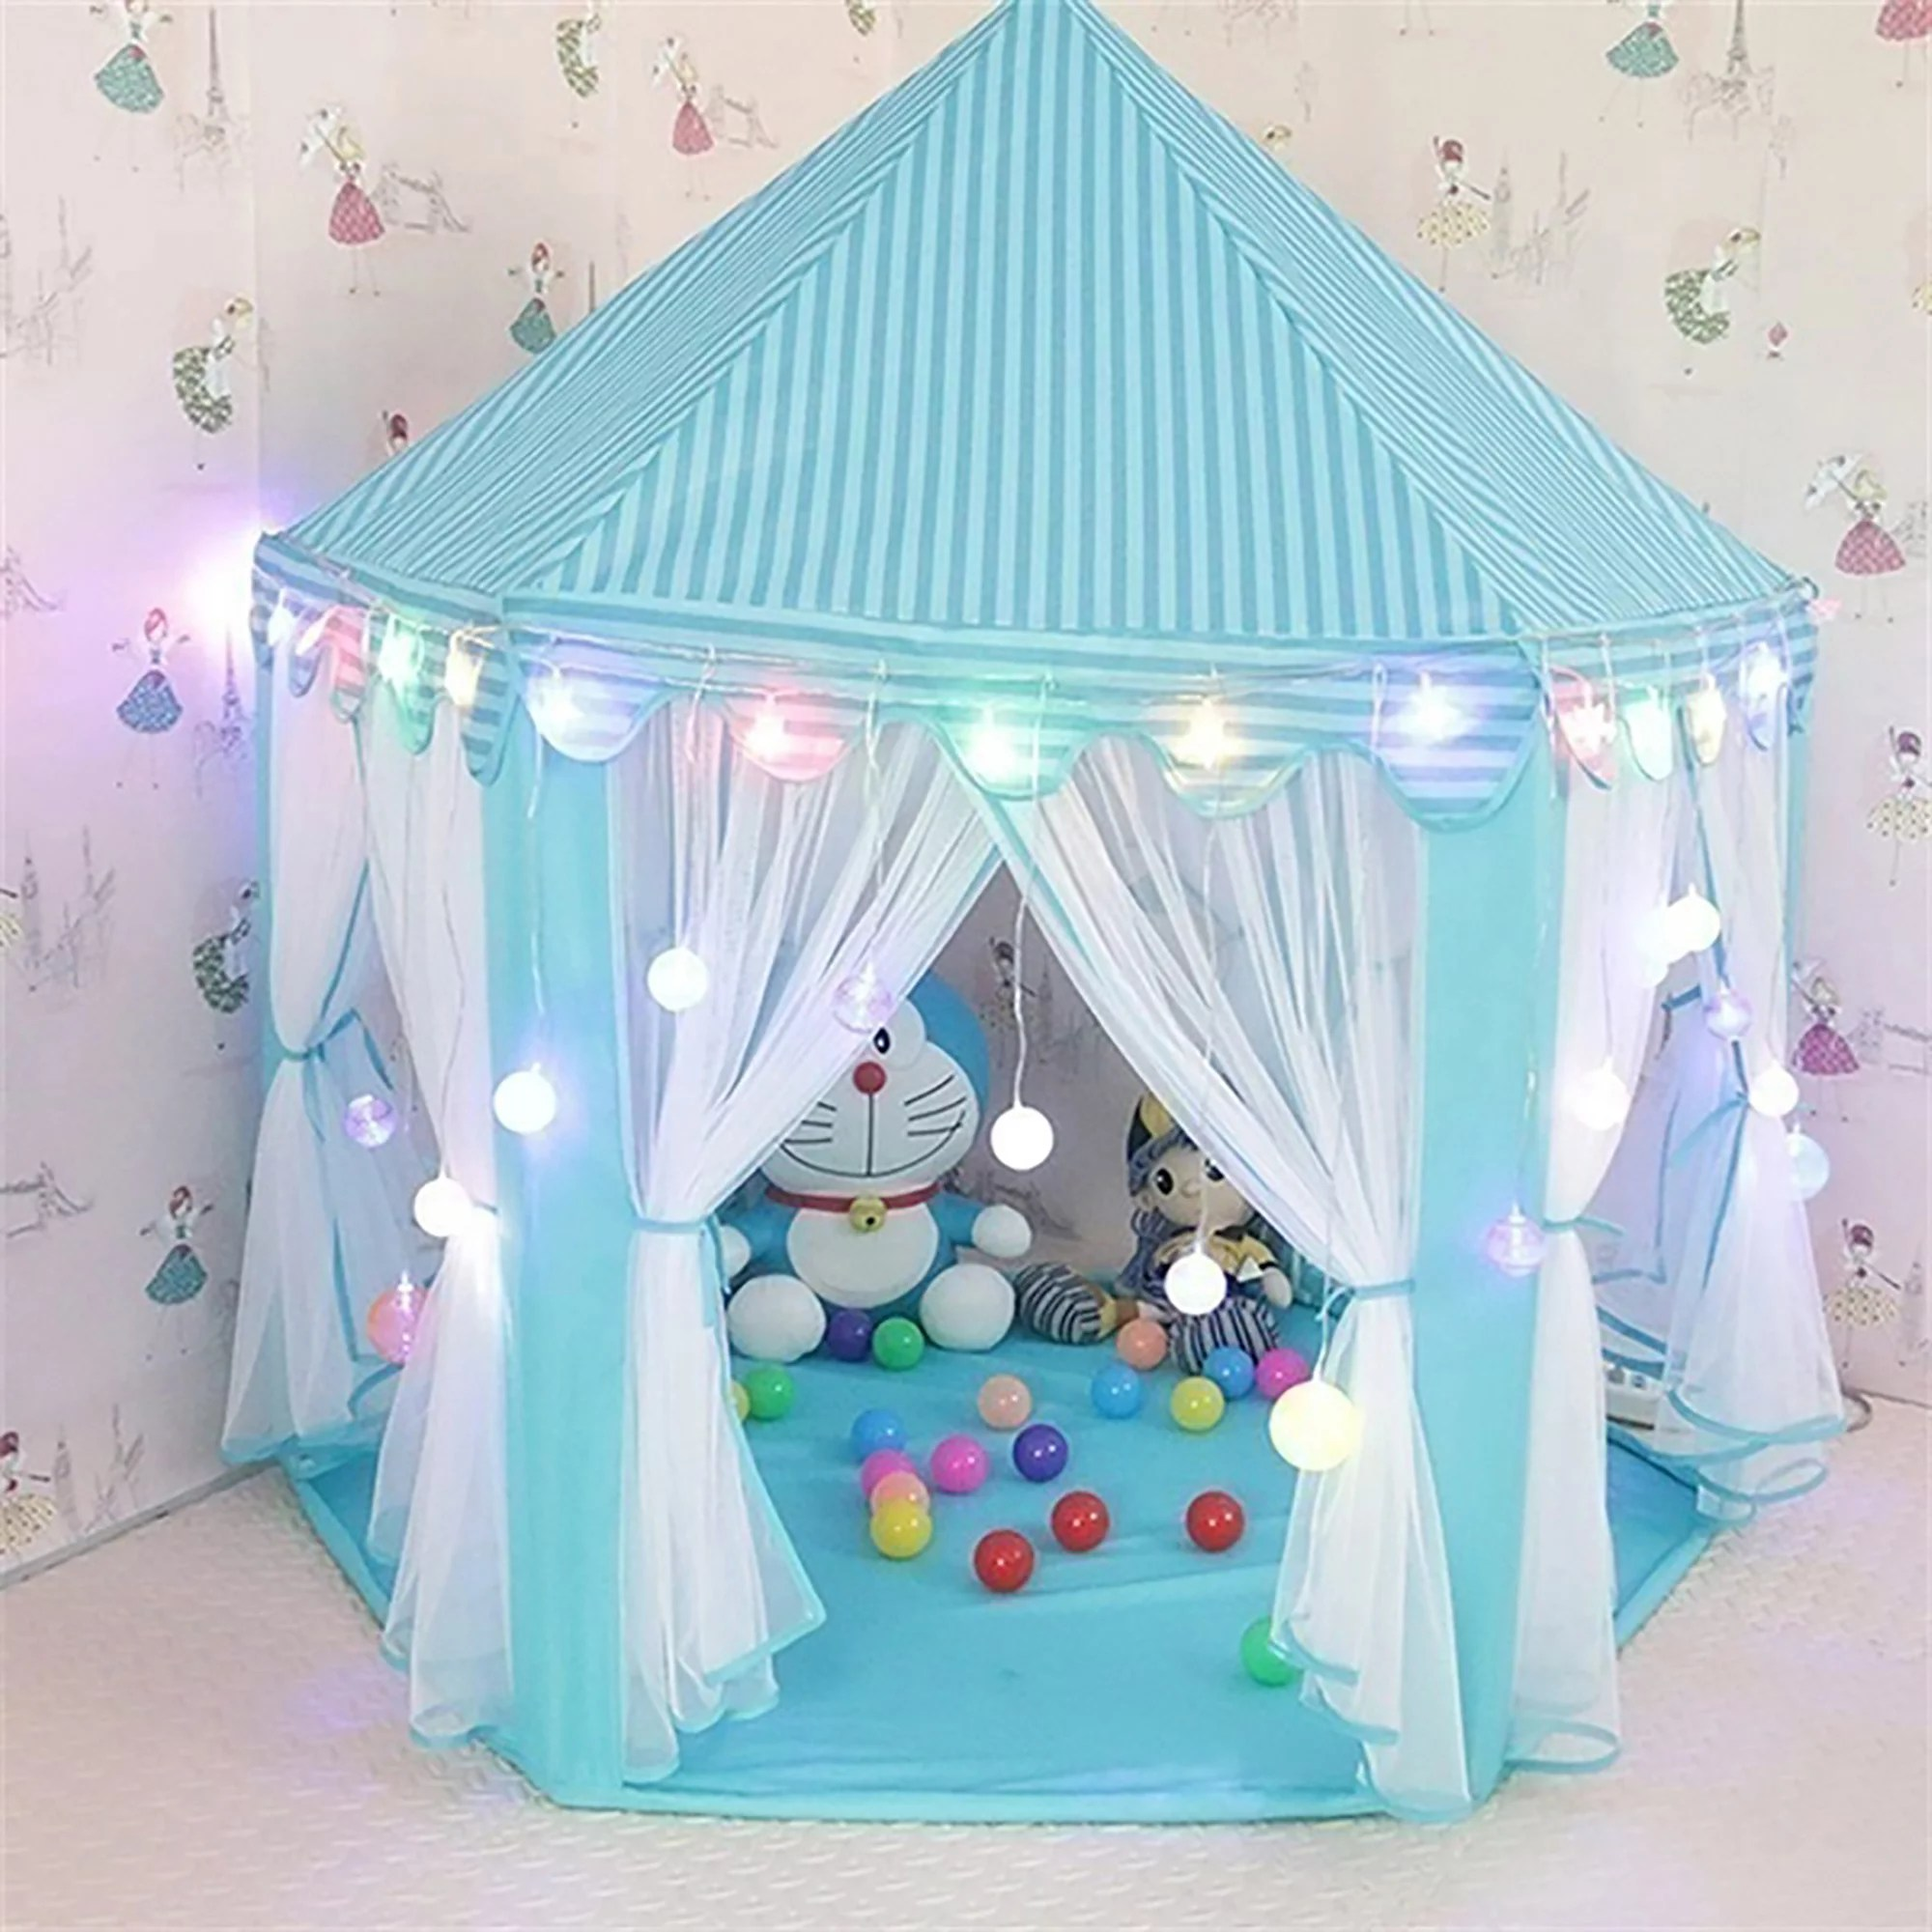 Kids Play Tent Tents For Girls Princess Castle Play House For Child Outdoor Indoor Portable Kids Children Play Tent For Girls Pink Birthday Gift Led Star Lights